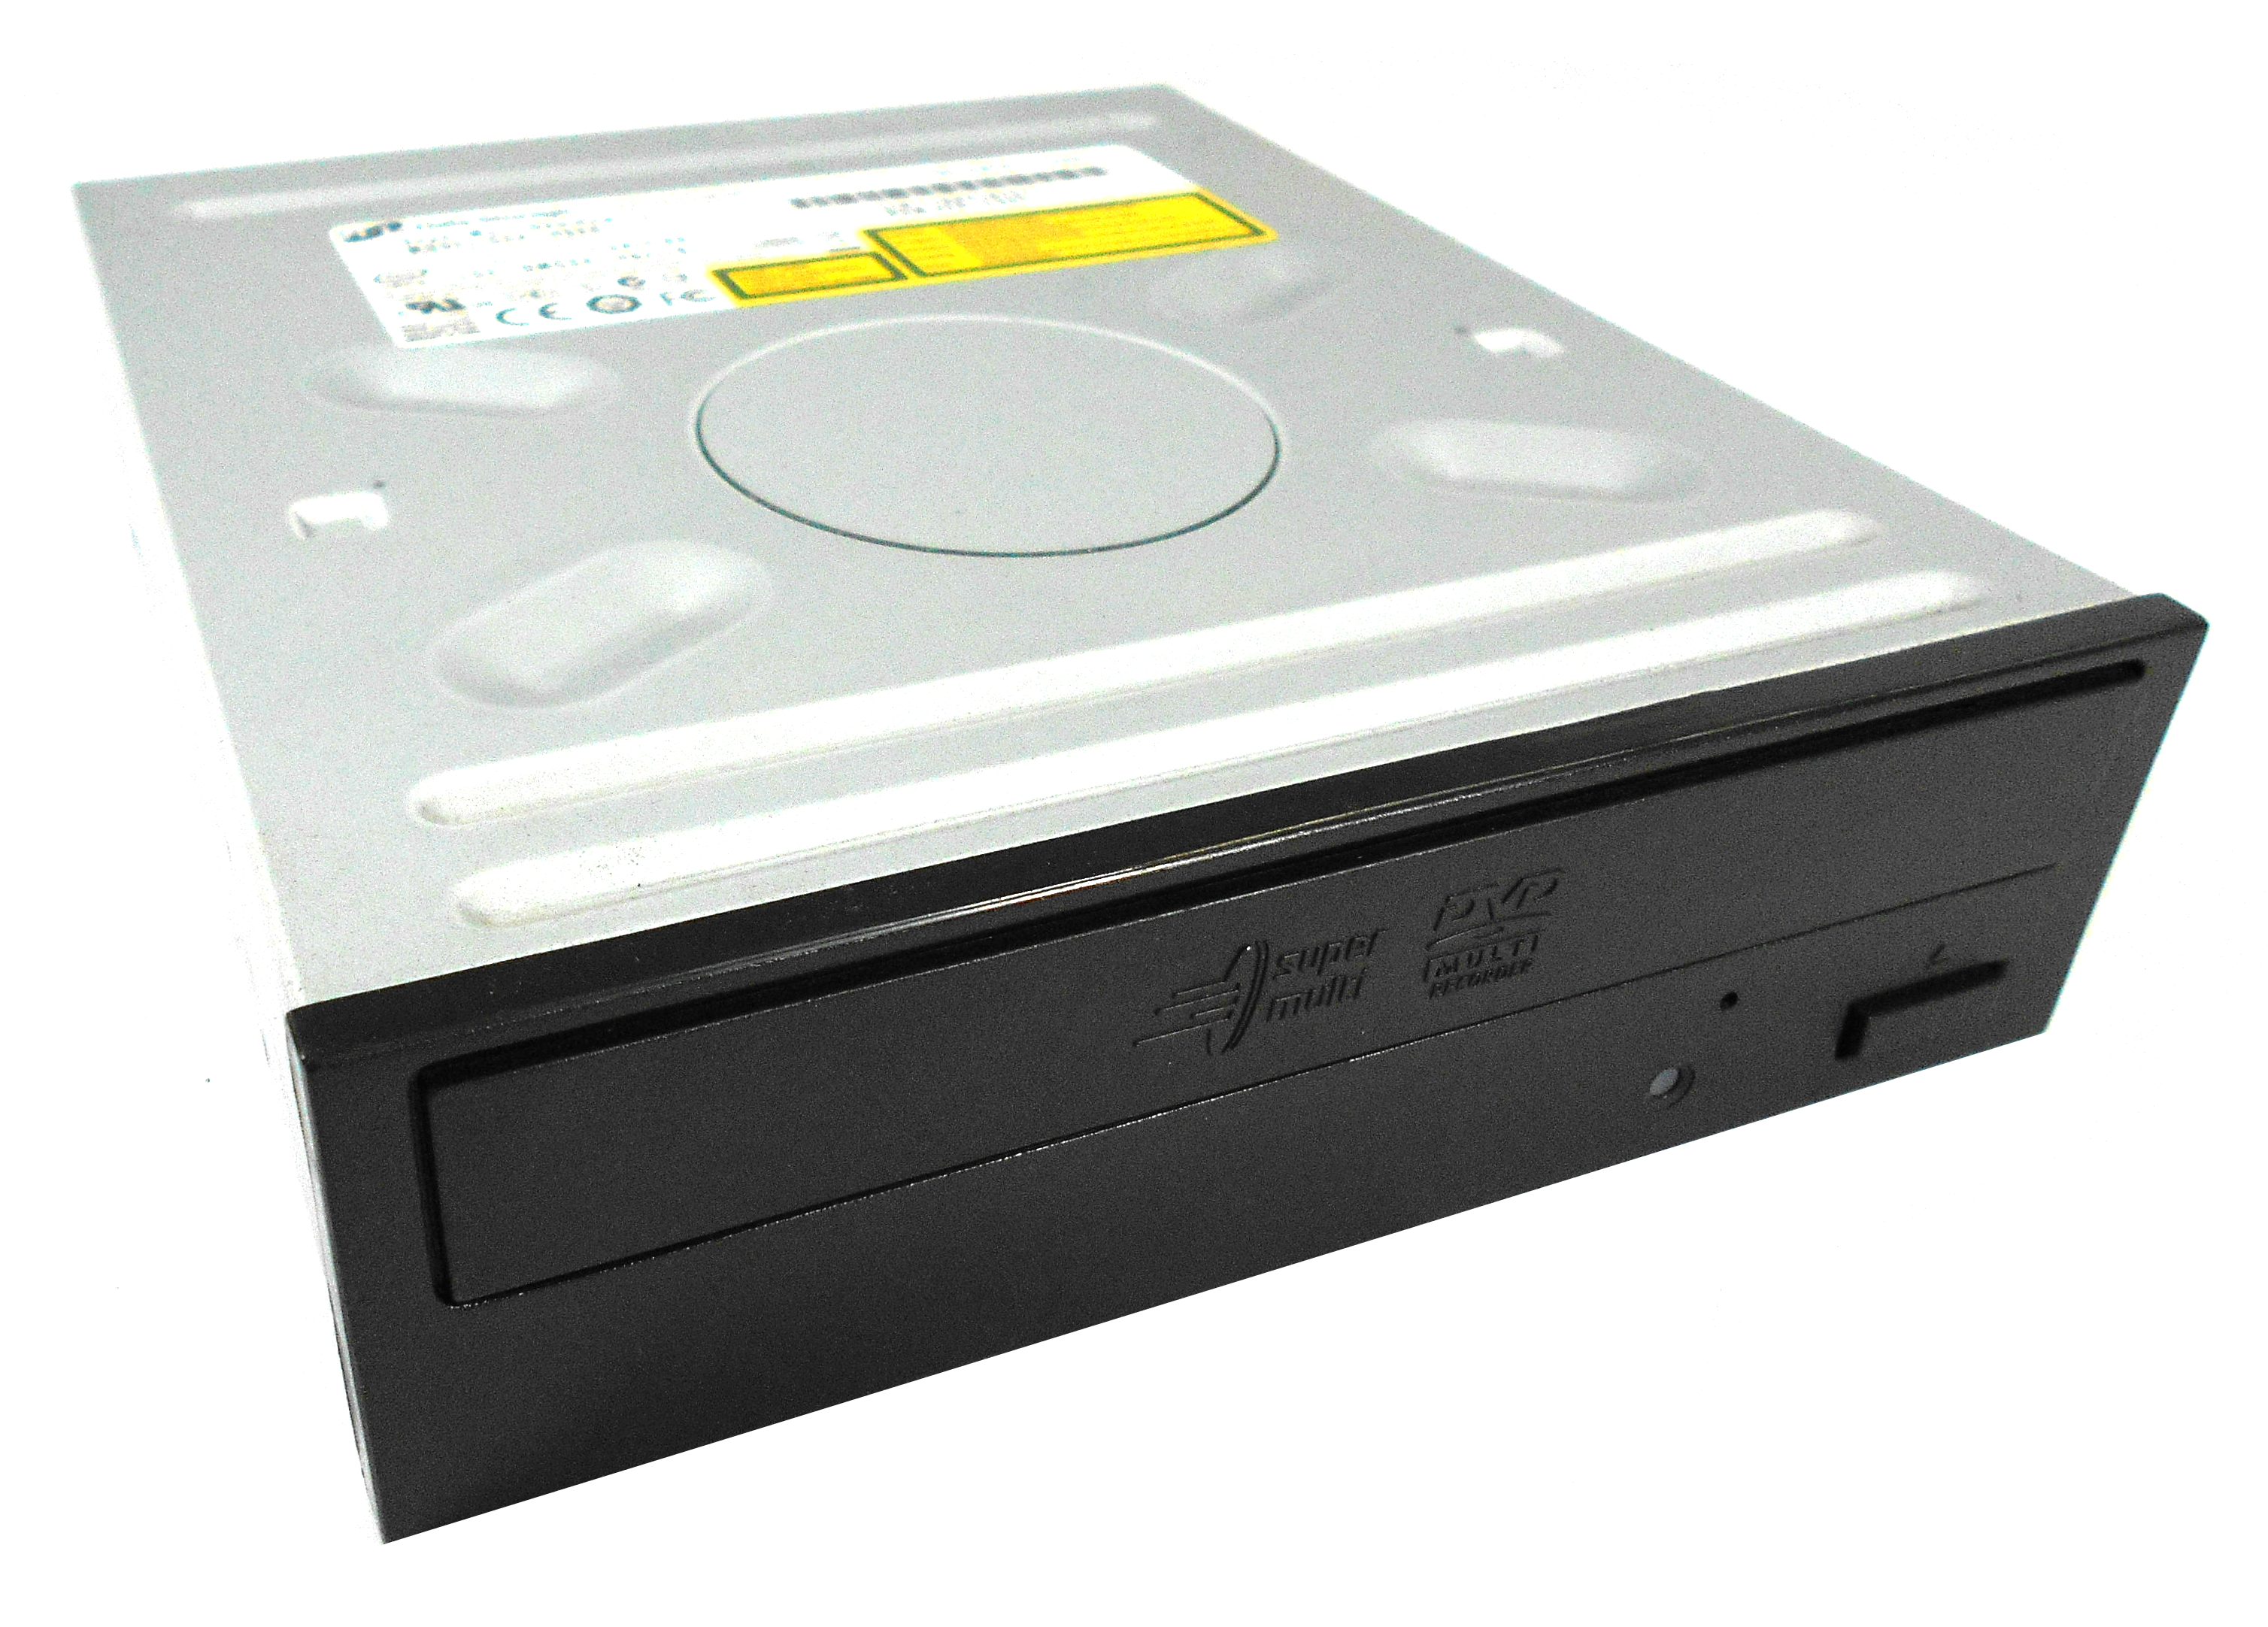 Samsung DVD Writer Drivers Download - Update Samsung Software